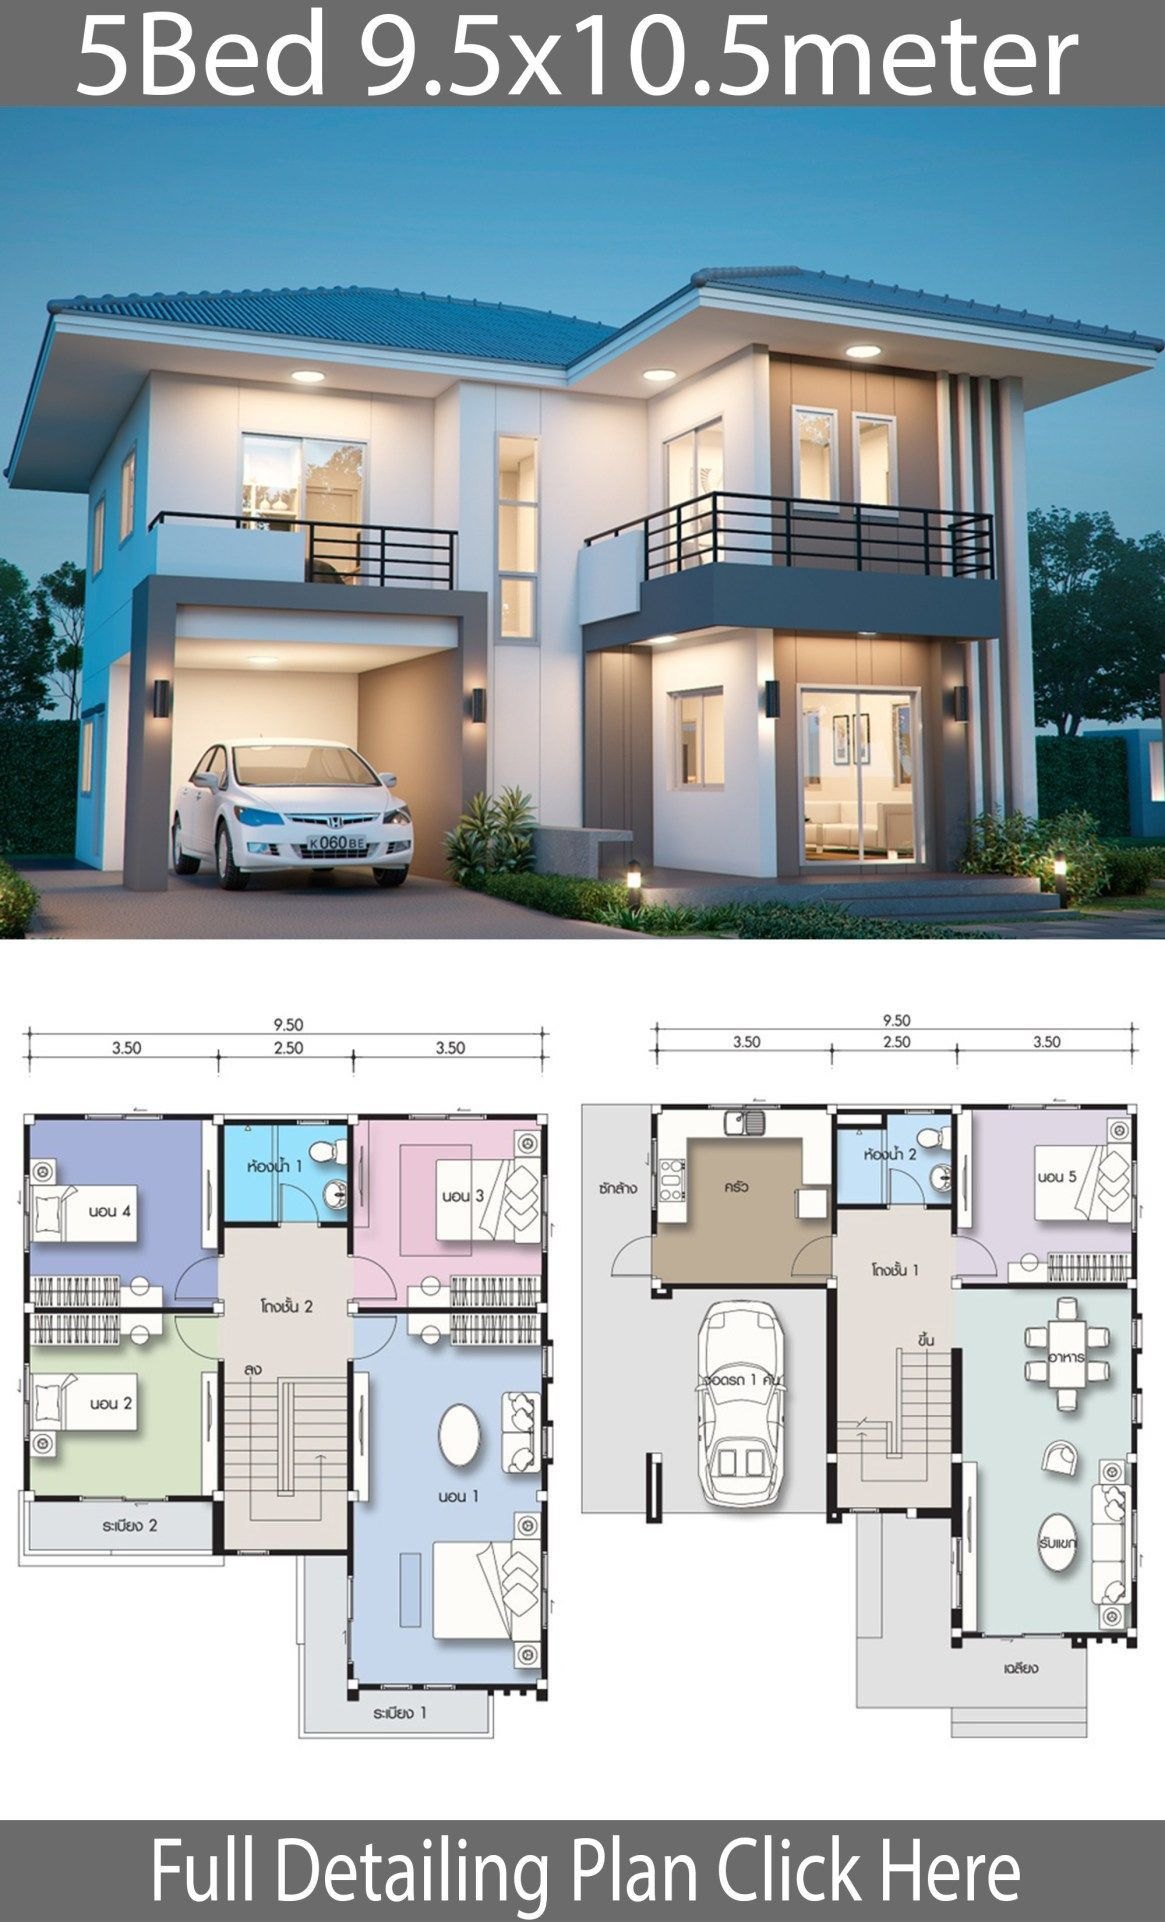 House Design Plan 9 5x10 5m With 5 Bedrooms In 2020 Duplex House Design Duplex House Plans Simple House Design